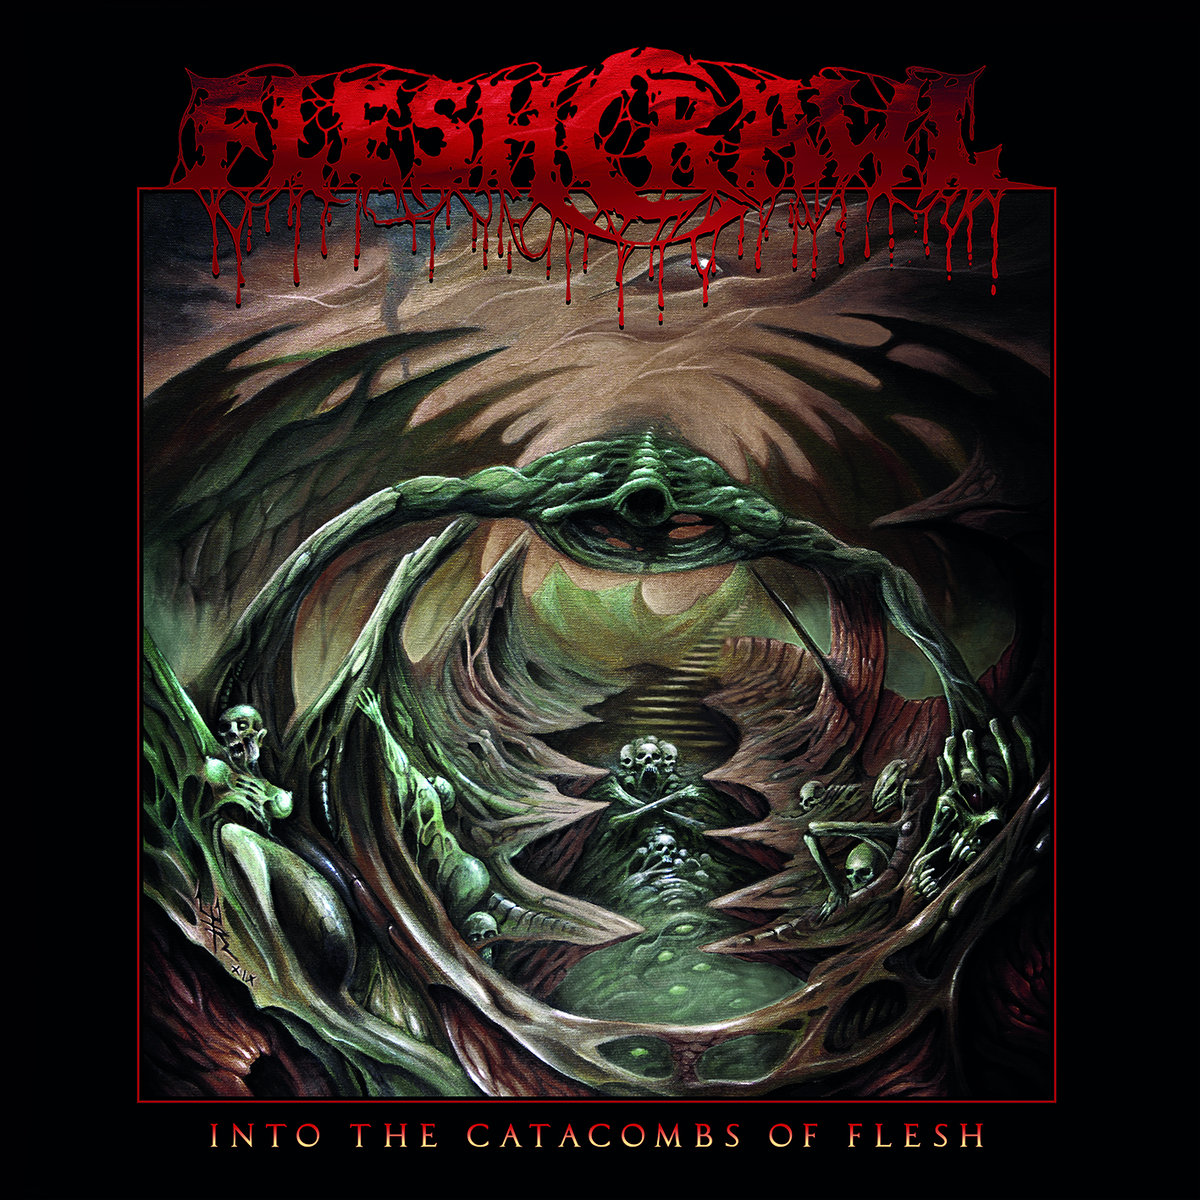 FLESHCRAWL Releases New Album